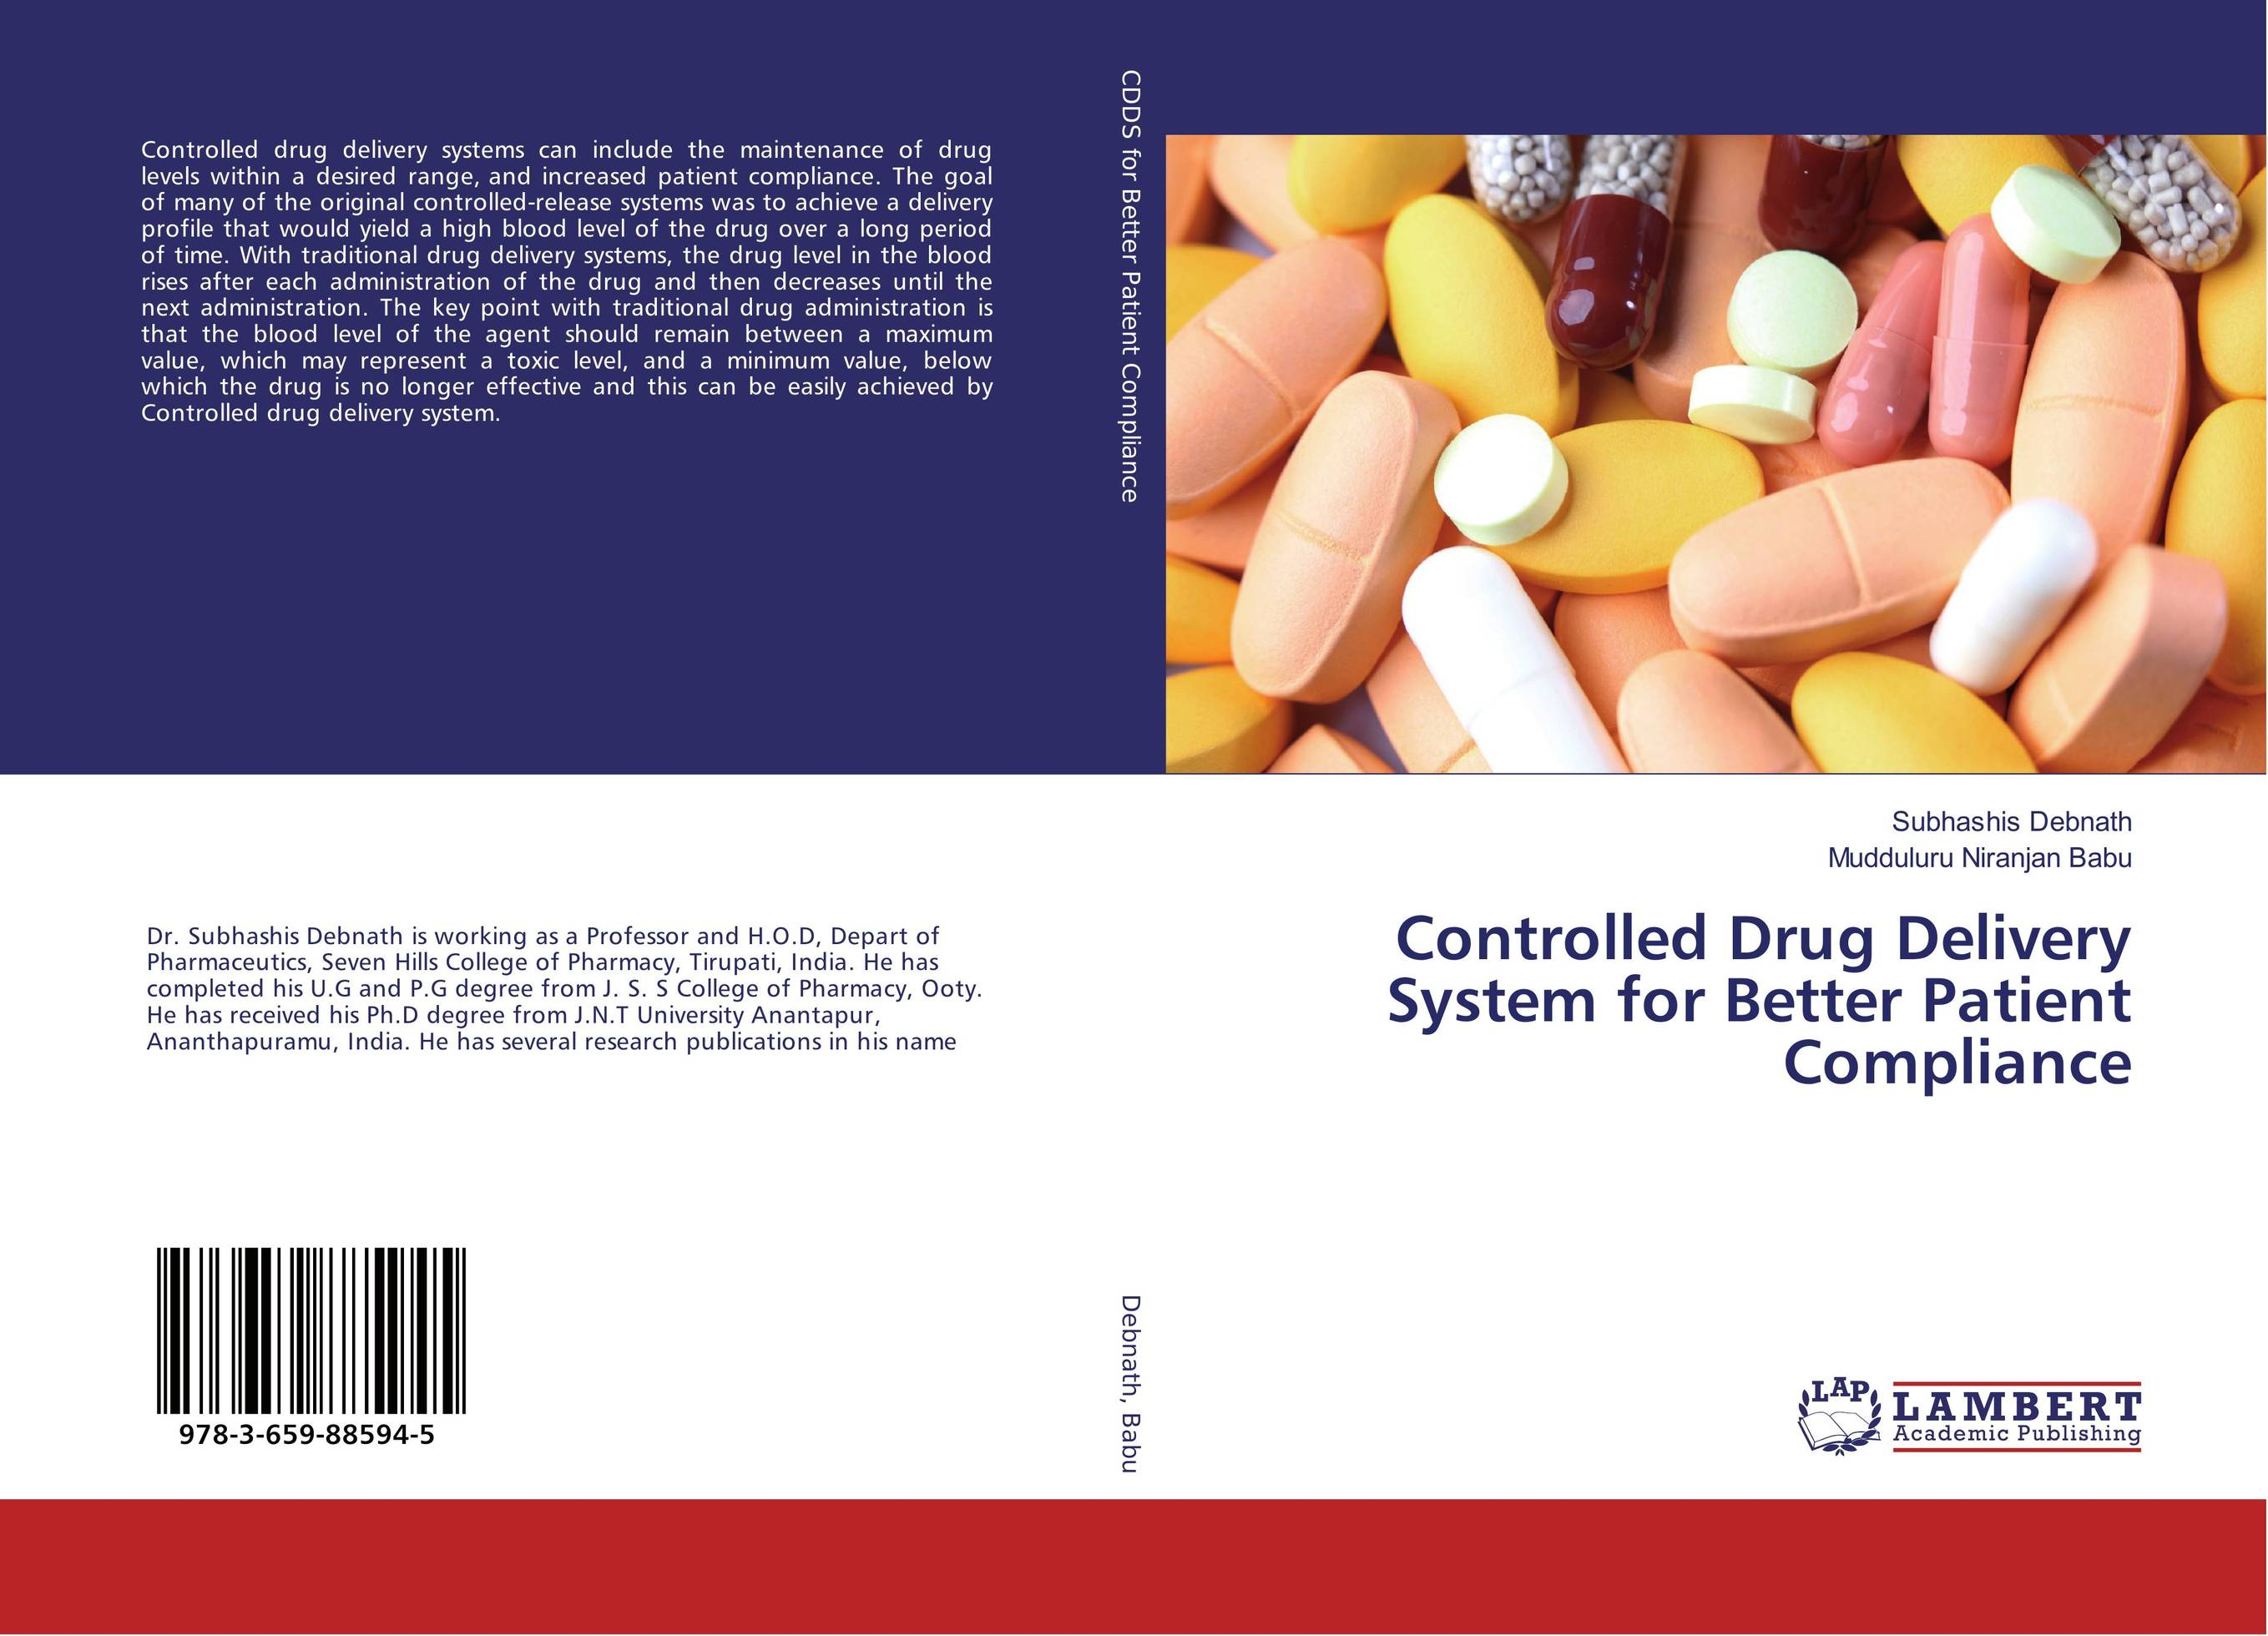 Controlled Drug Delivery System for Better Patient Compliance kamal singh rathore shreya patel and naisarg pujara nanoparticulate drug delivery system